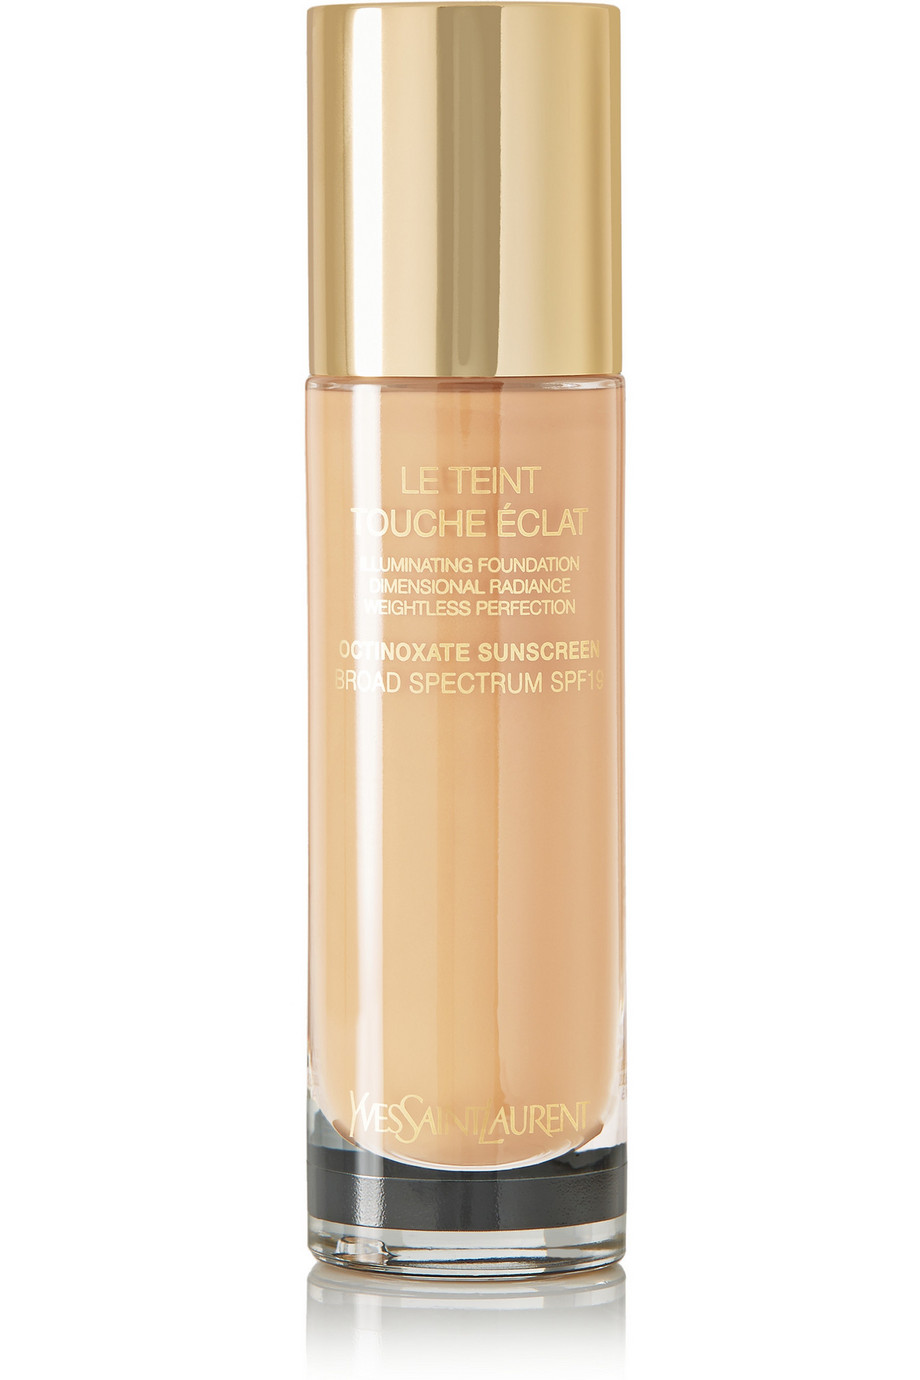 Le Teint Touche Éclat Illuminating Foundation - Beige Rosé 20, 30ml, by Yves Saint Laurent Beauty